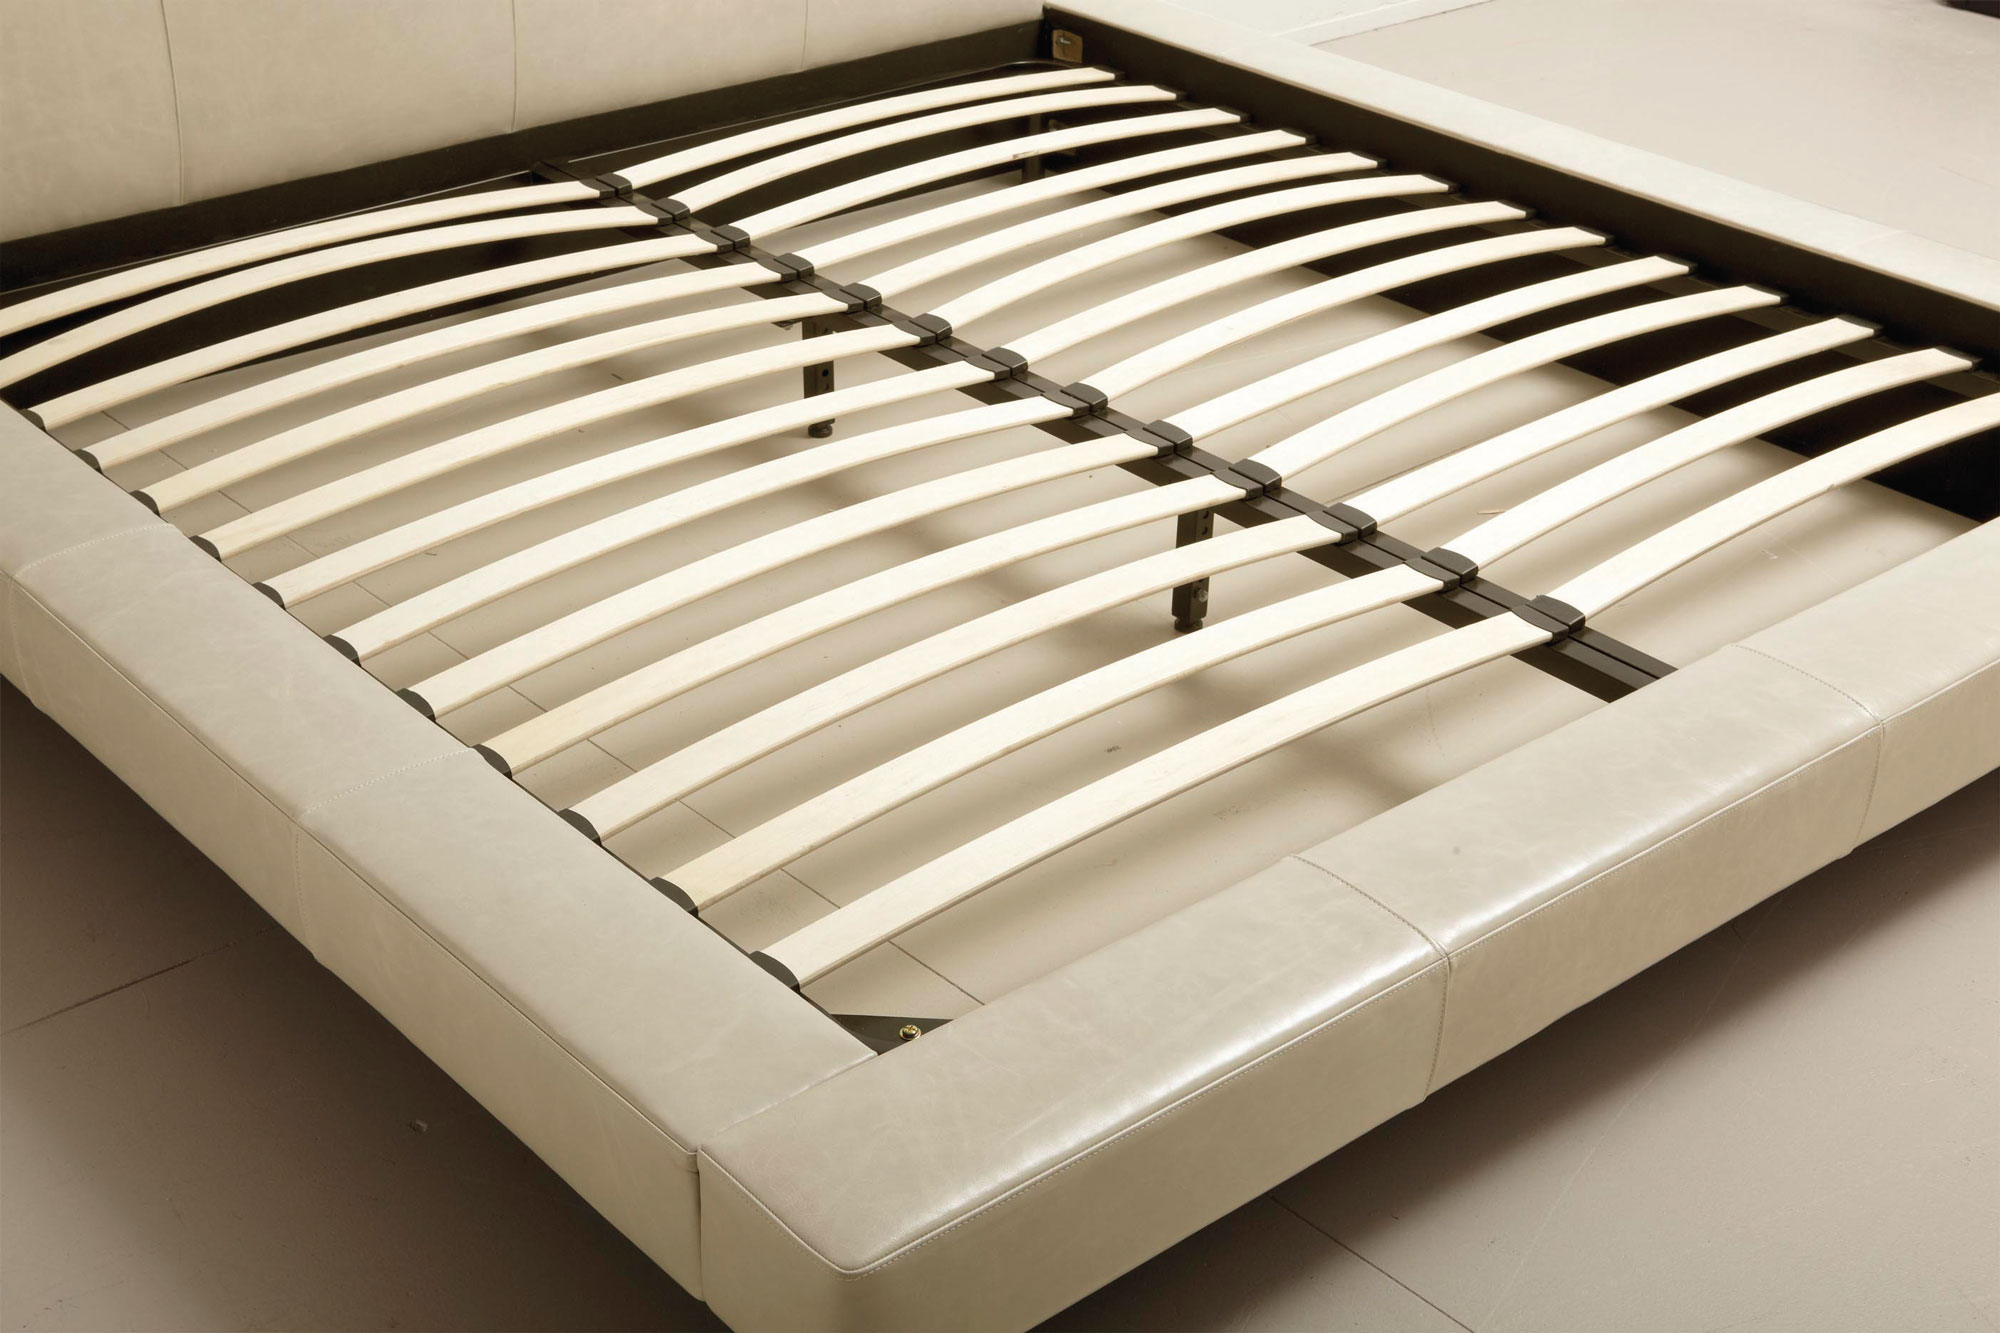 Euro Slat Systems Are Available On A Variety Of Our Beds For Mattress Only Applications No Box Springs Required